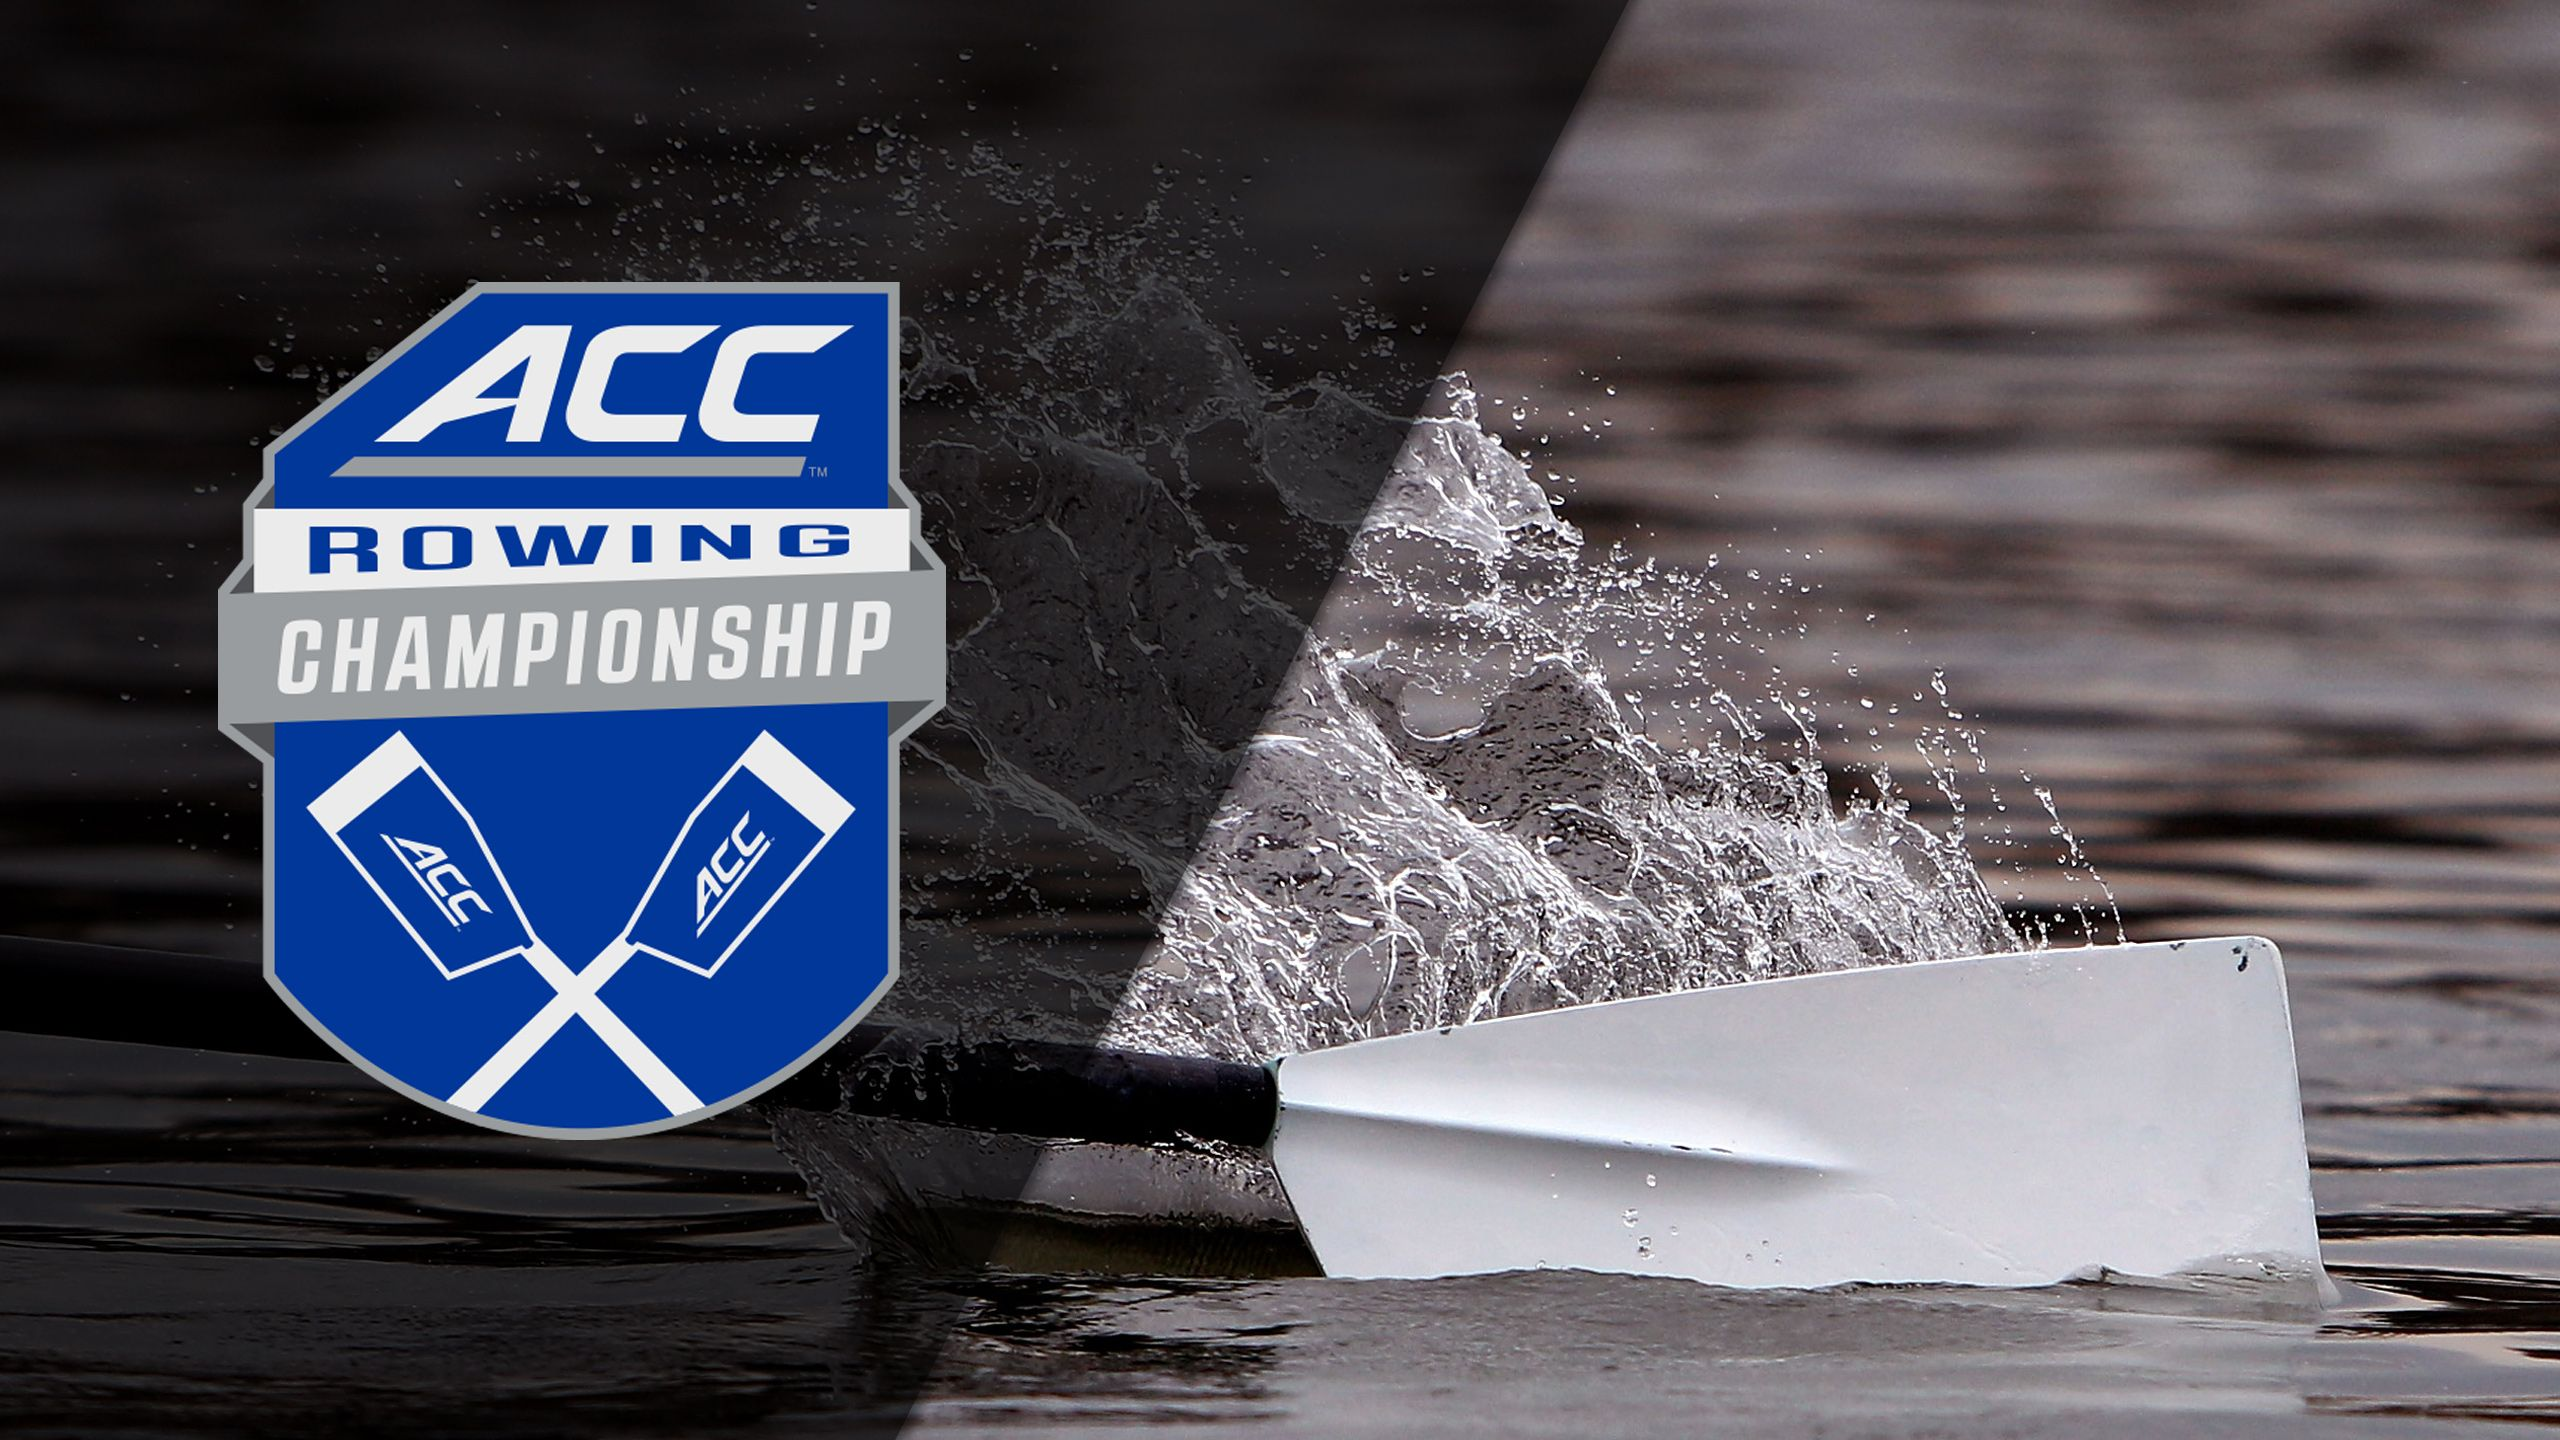 ACC Rowing Championship (Finals)